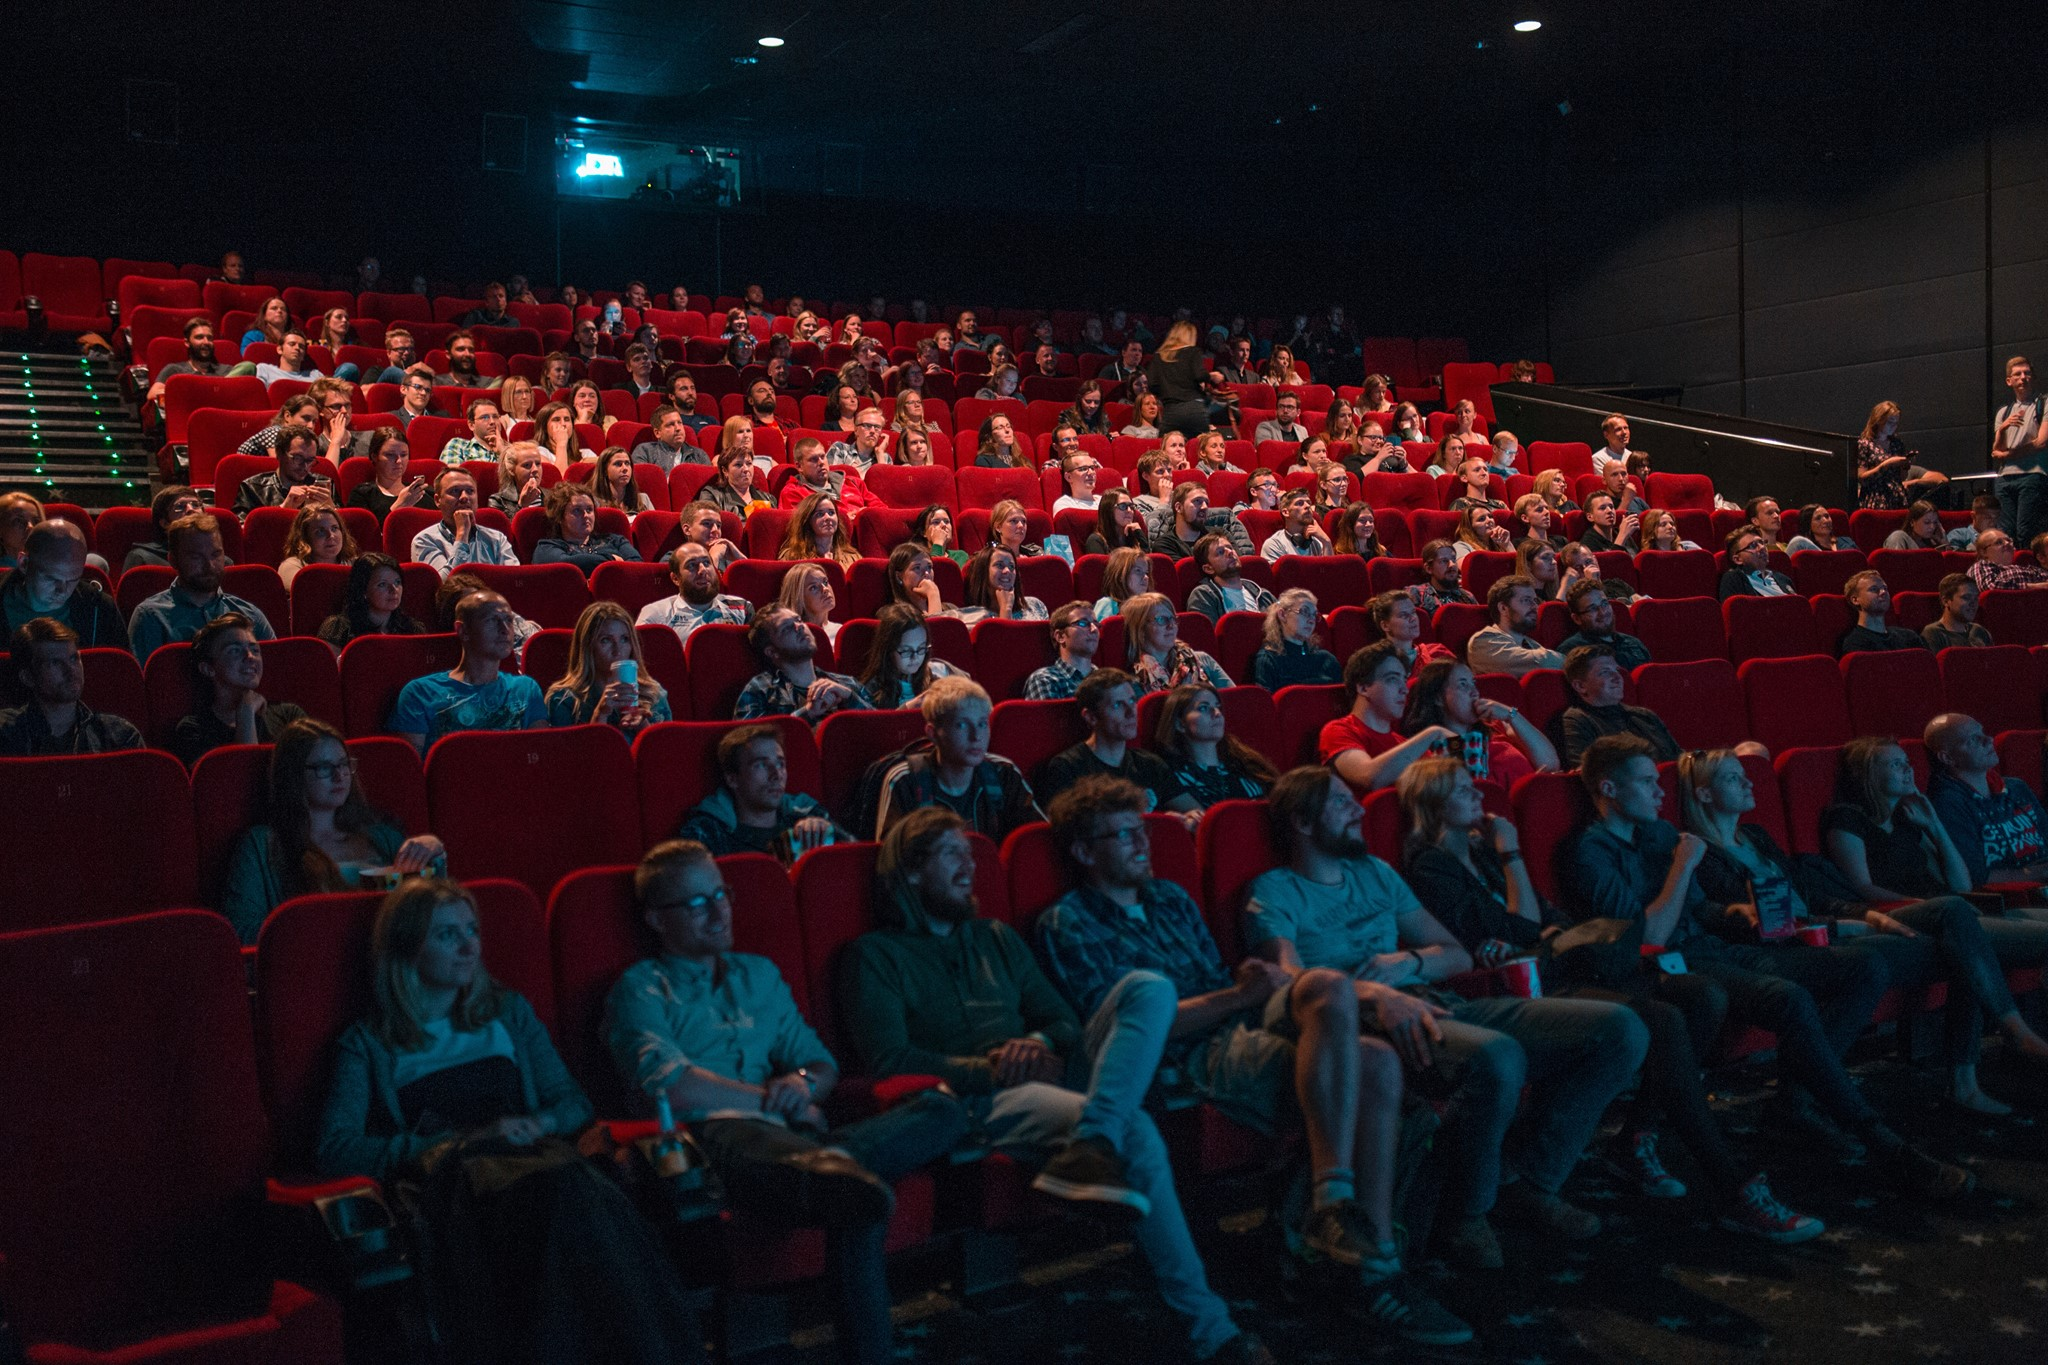 An audience fills the house at the theater